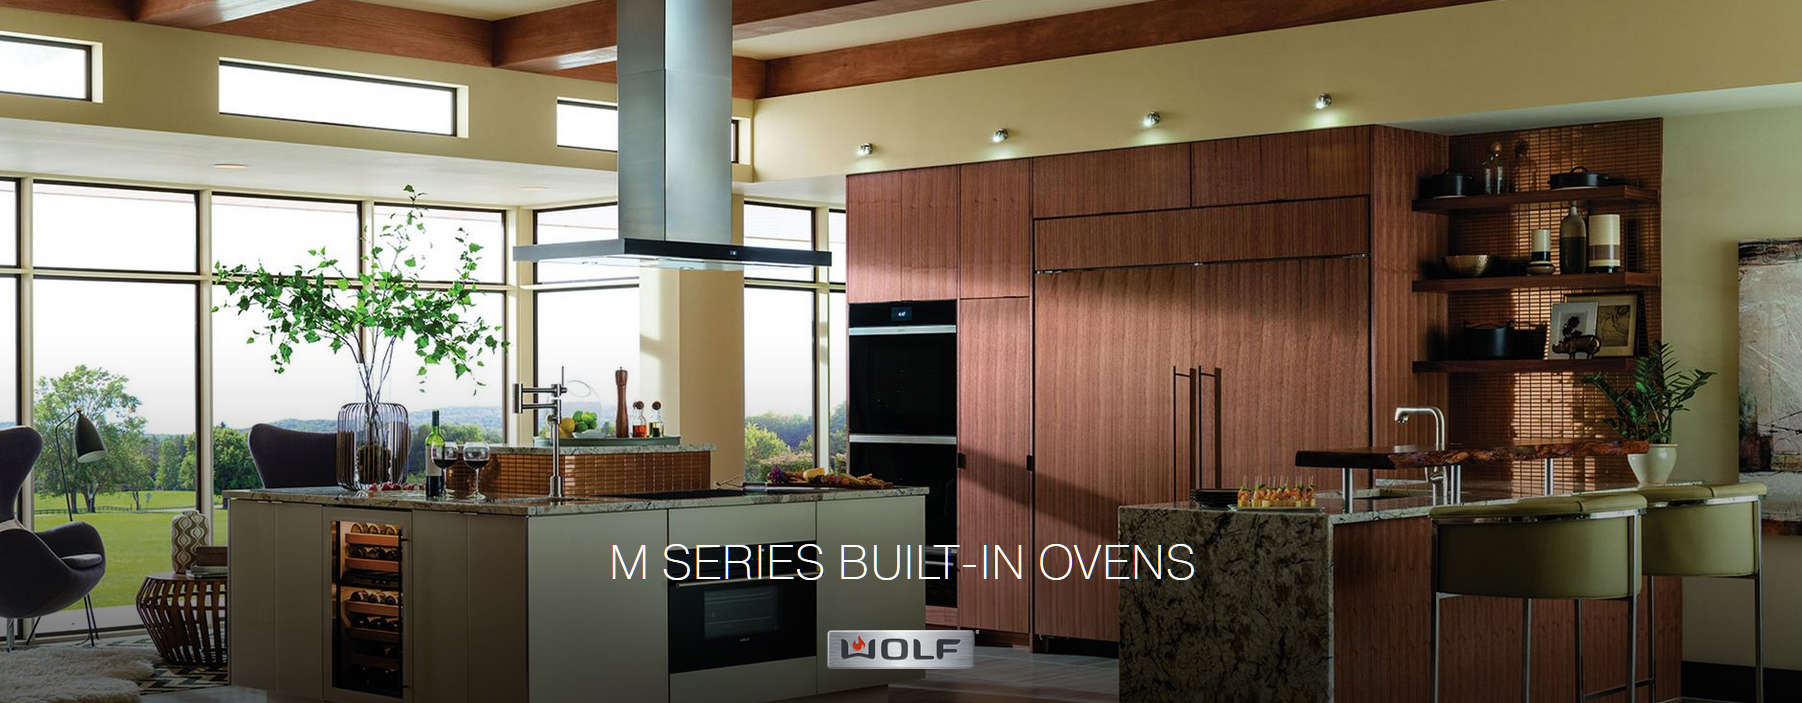 Wolf M Series Built-In Ovens